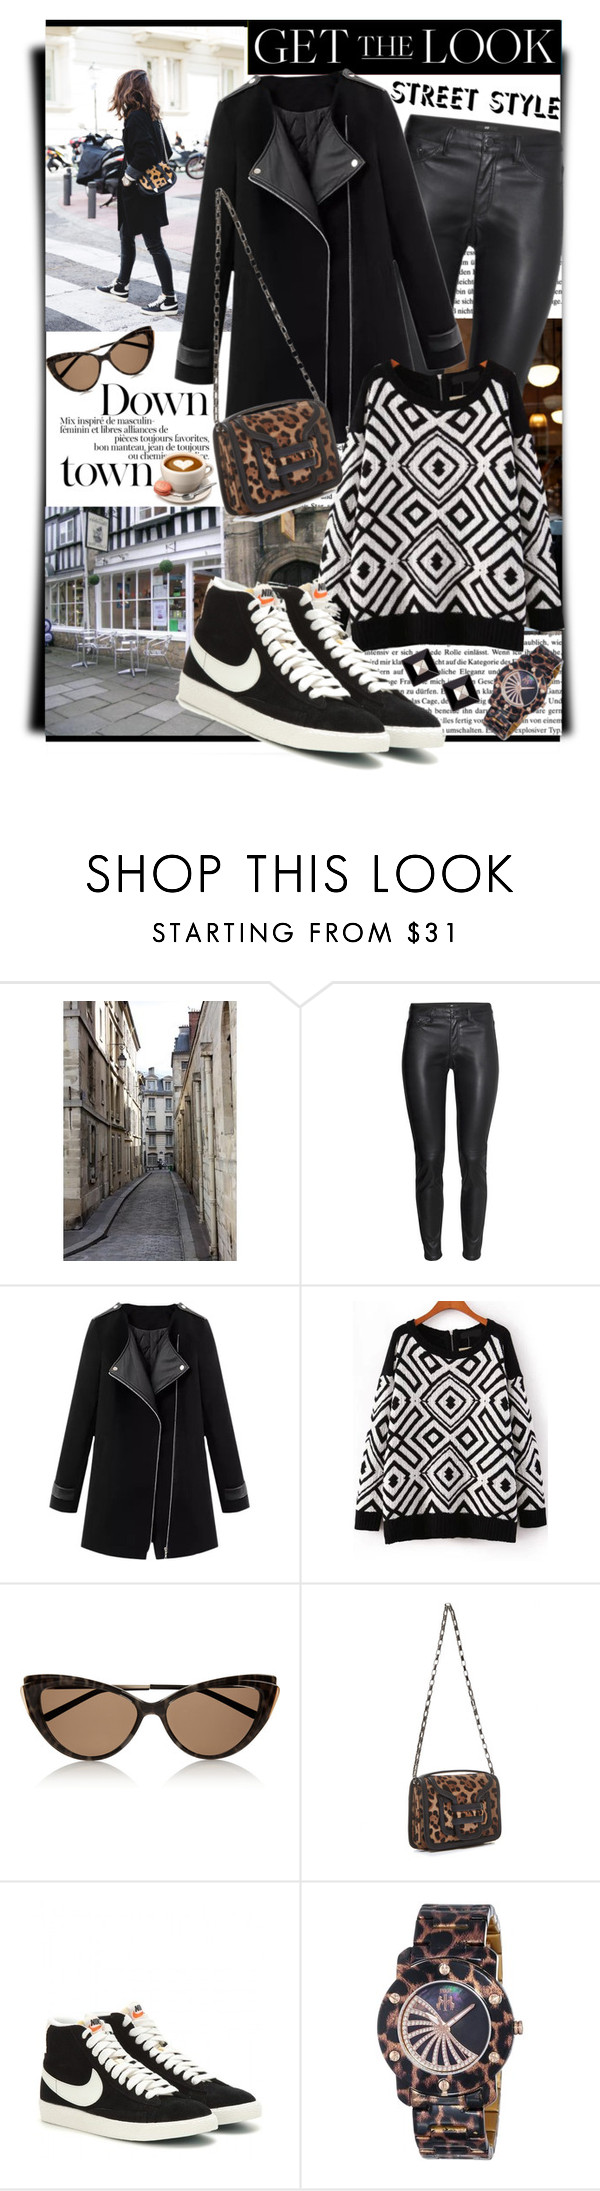 """""""Cute City Chic"""" by shortyluv718 ❤ liked on Polyvore featuring H&M, Yves Saint Laurent, Pierre Hardy, NIKE, Jivago and Givenchy"""